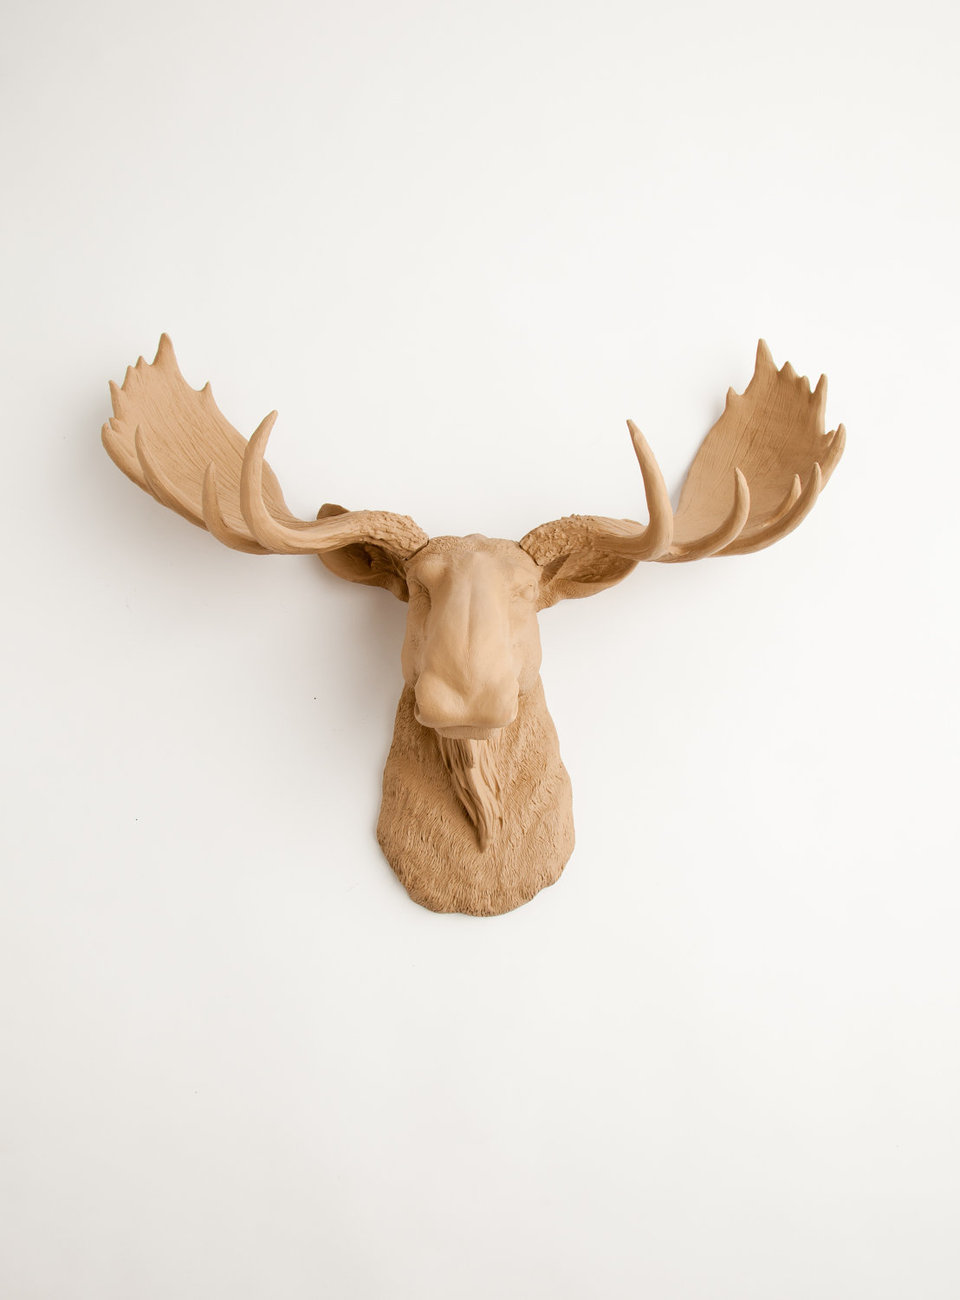 The Agatha  Tan Resin Moose Head White Faux Taxidermy. Rooms For Rent In North Hollywood. Living Room Leather Furniture. Decorative Letter A. Hotel Room Nyc. Ikea Dining Room Furniture. Cheap Decorative Pillows For Sale. Cheap Room Divider Ideas. Decorative Electrical Switches